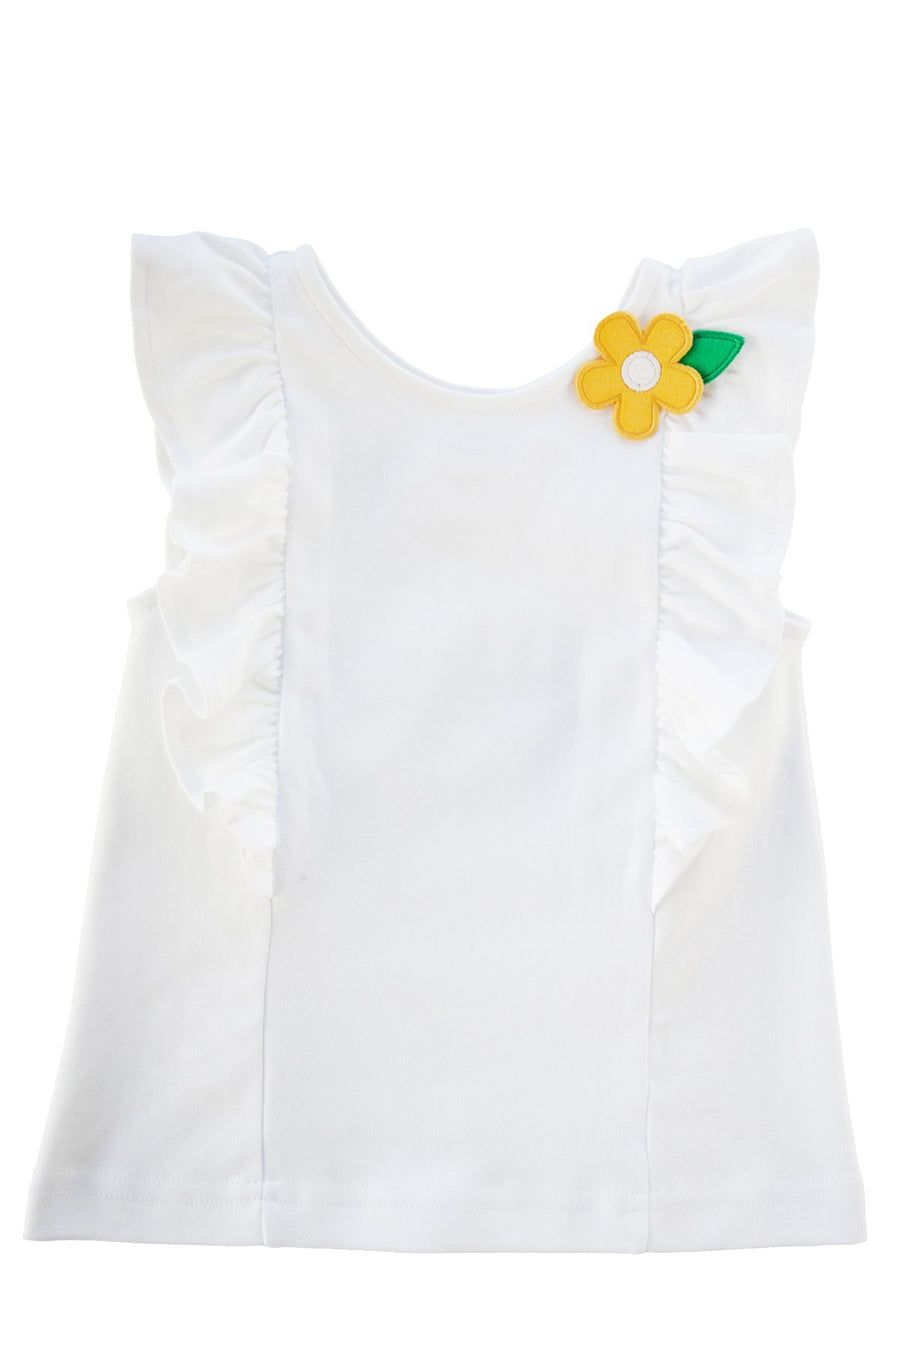 Florence Eiseman knit top with ruffles & flower appliqué